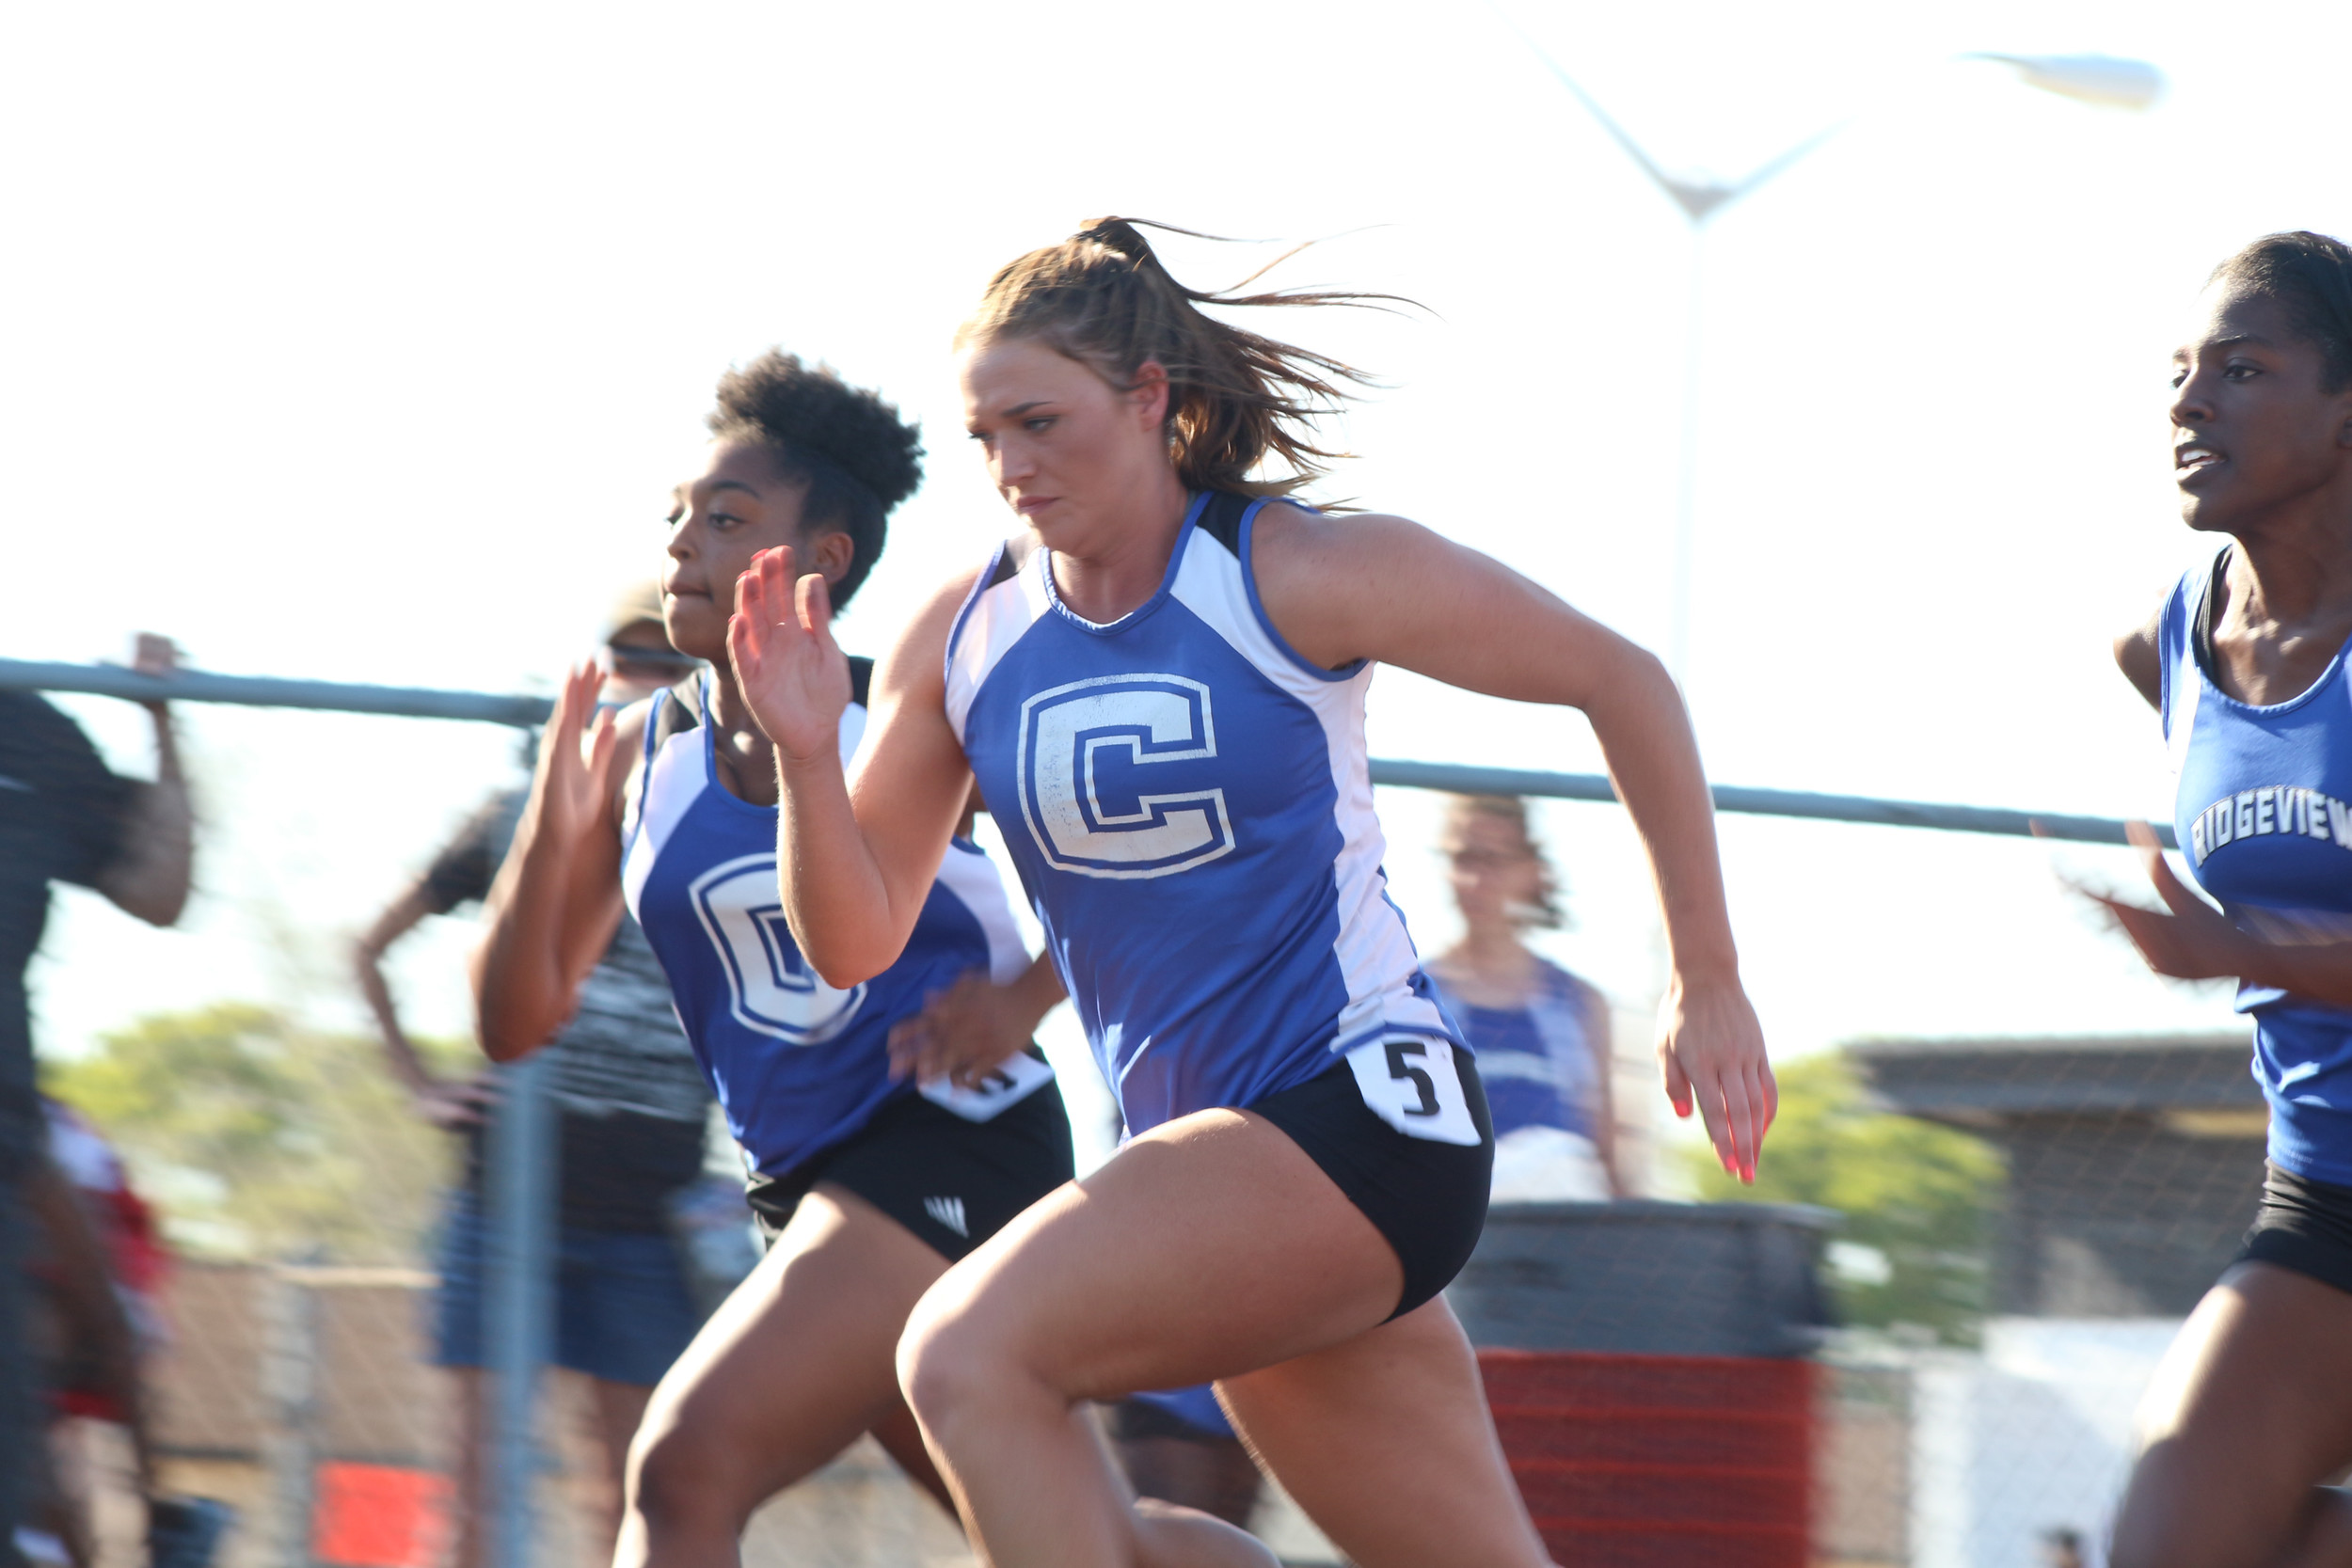 Top: Clay High sprinter Christy Carlisle blasts from start of 100 meter dash.